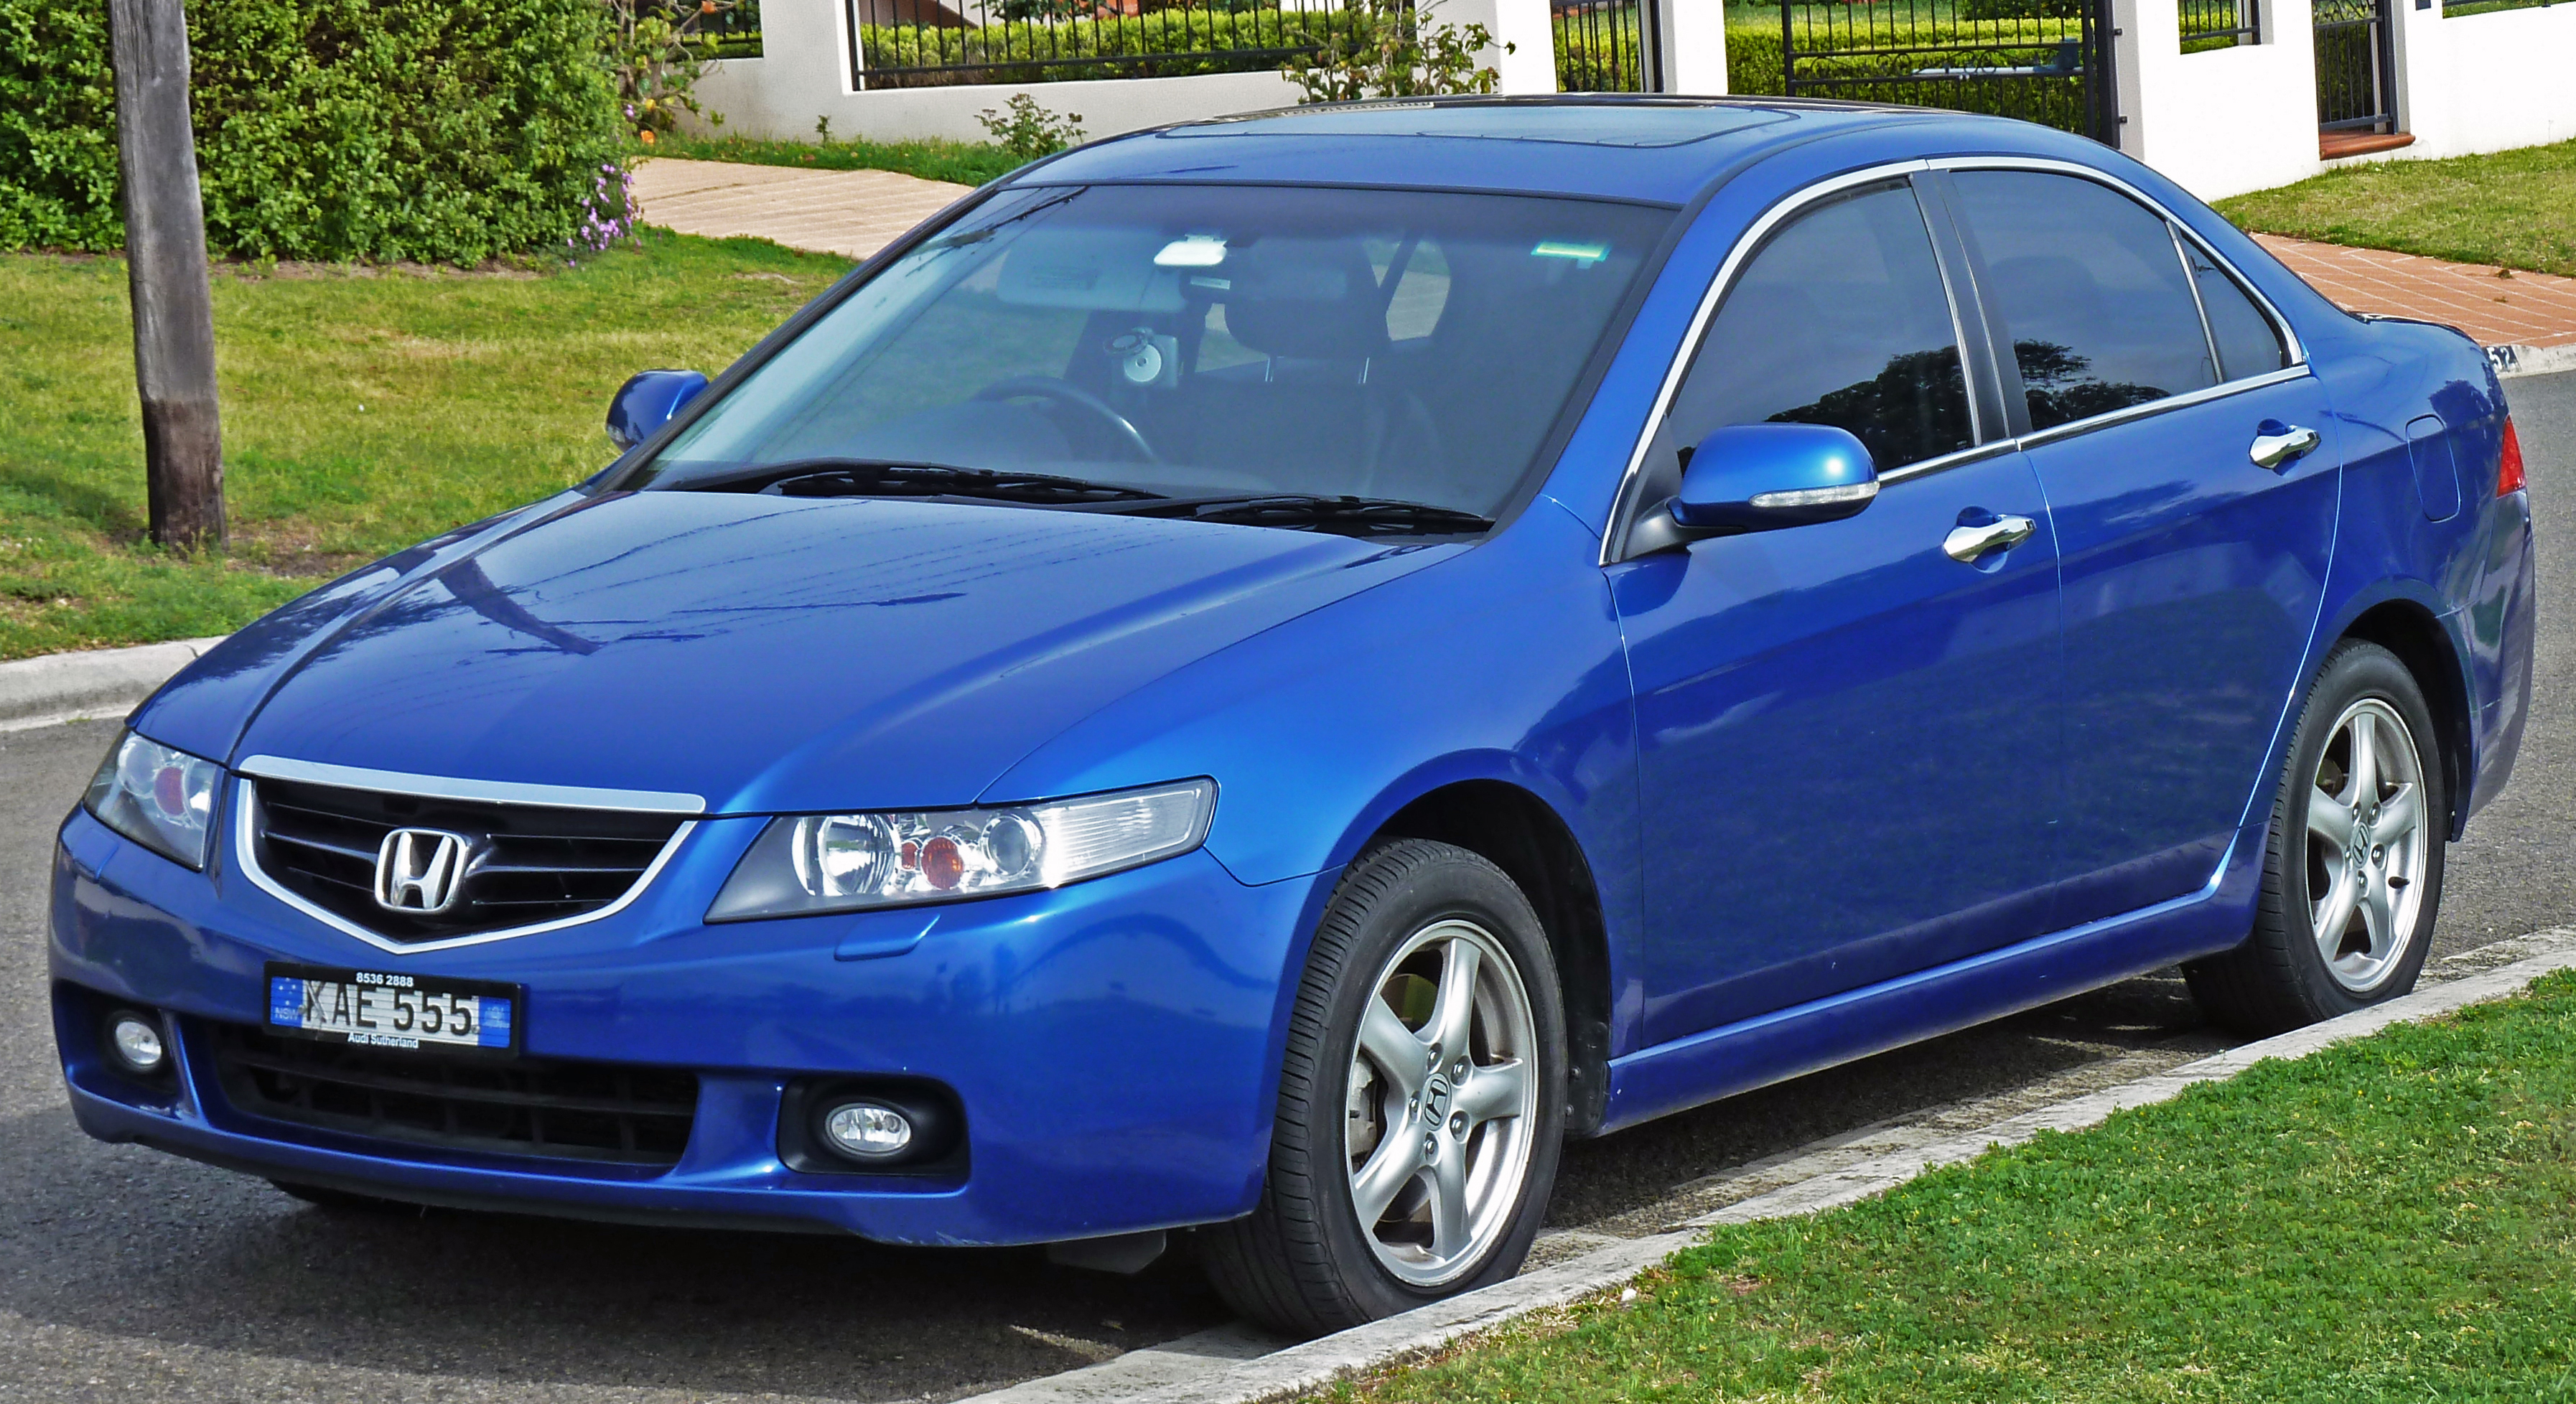 honda accord viii sedan 2014 pics #9